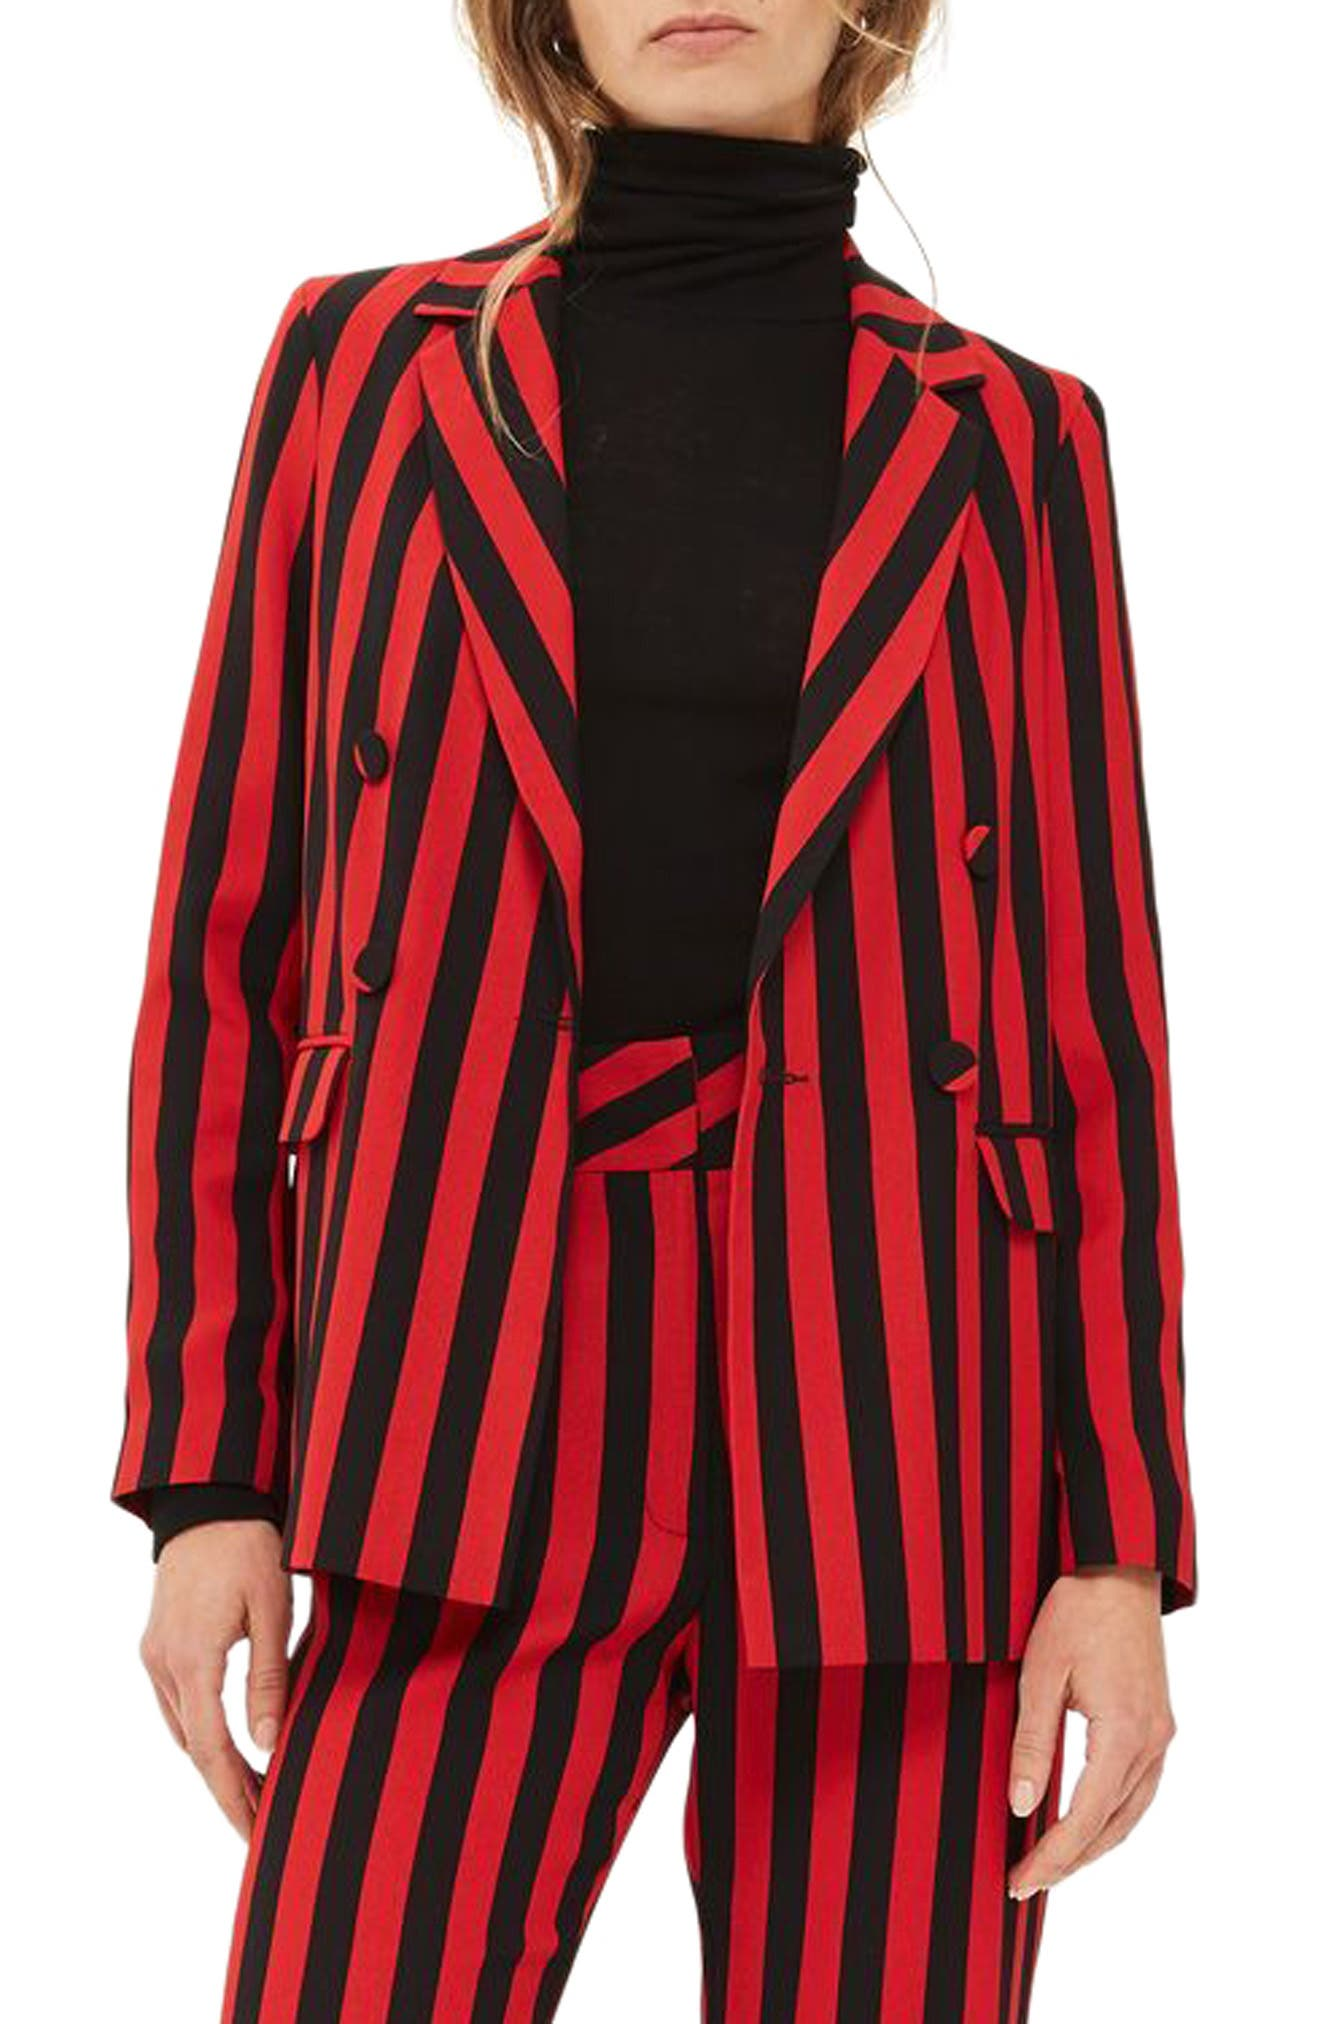 Humbug Stripe Double Breasted Blazer,                             Main thumbnail 1, color,                             601